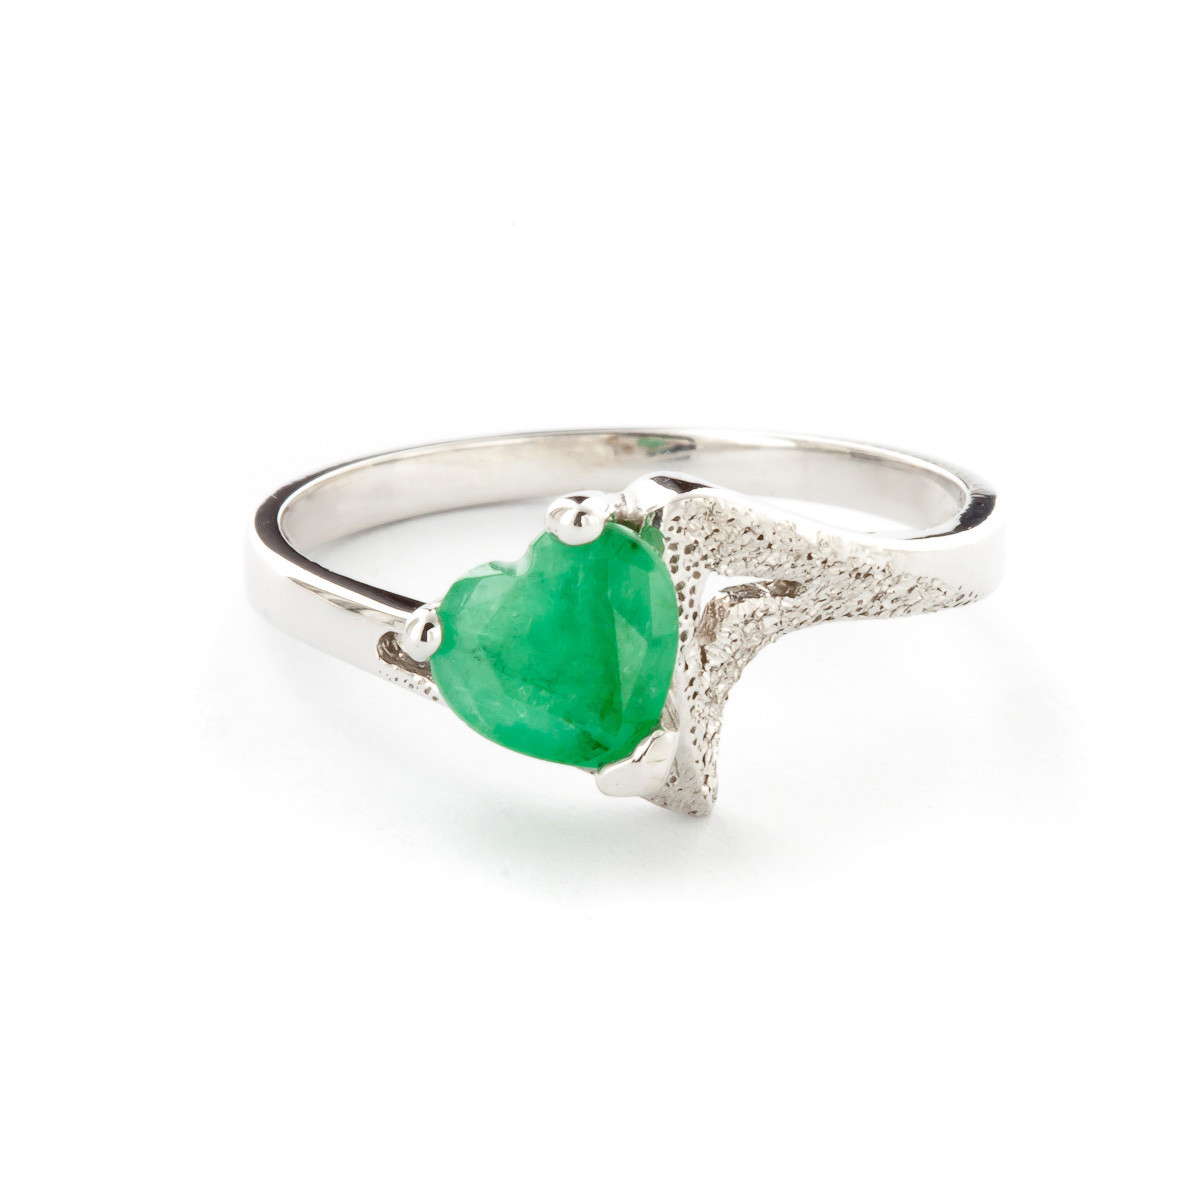 Emerald Devotion Ring 1 ct in 9ct White Gold